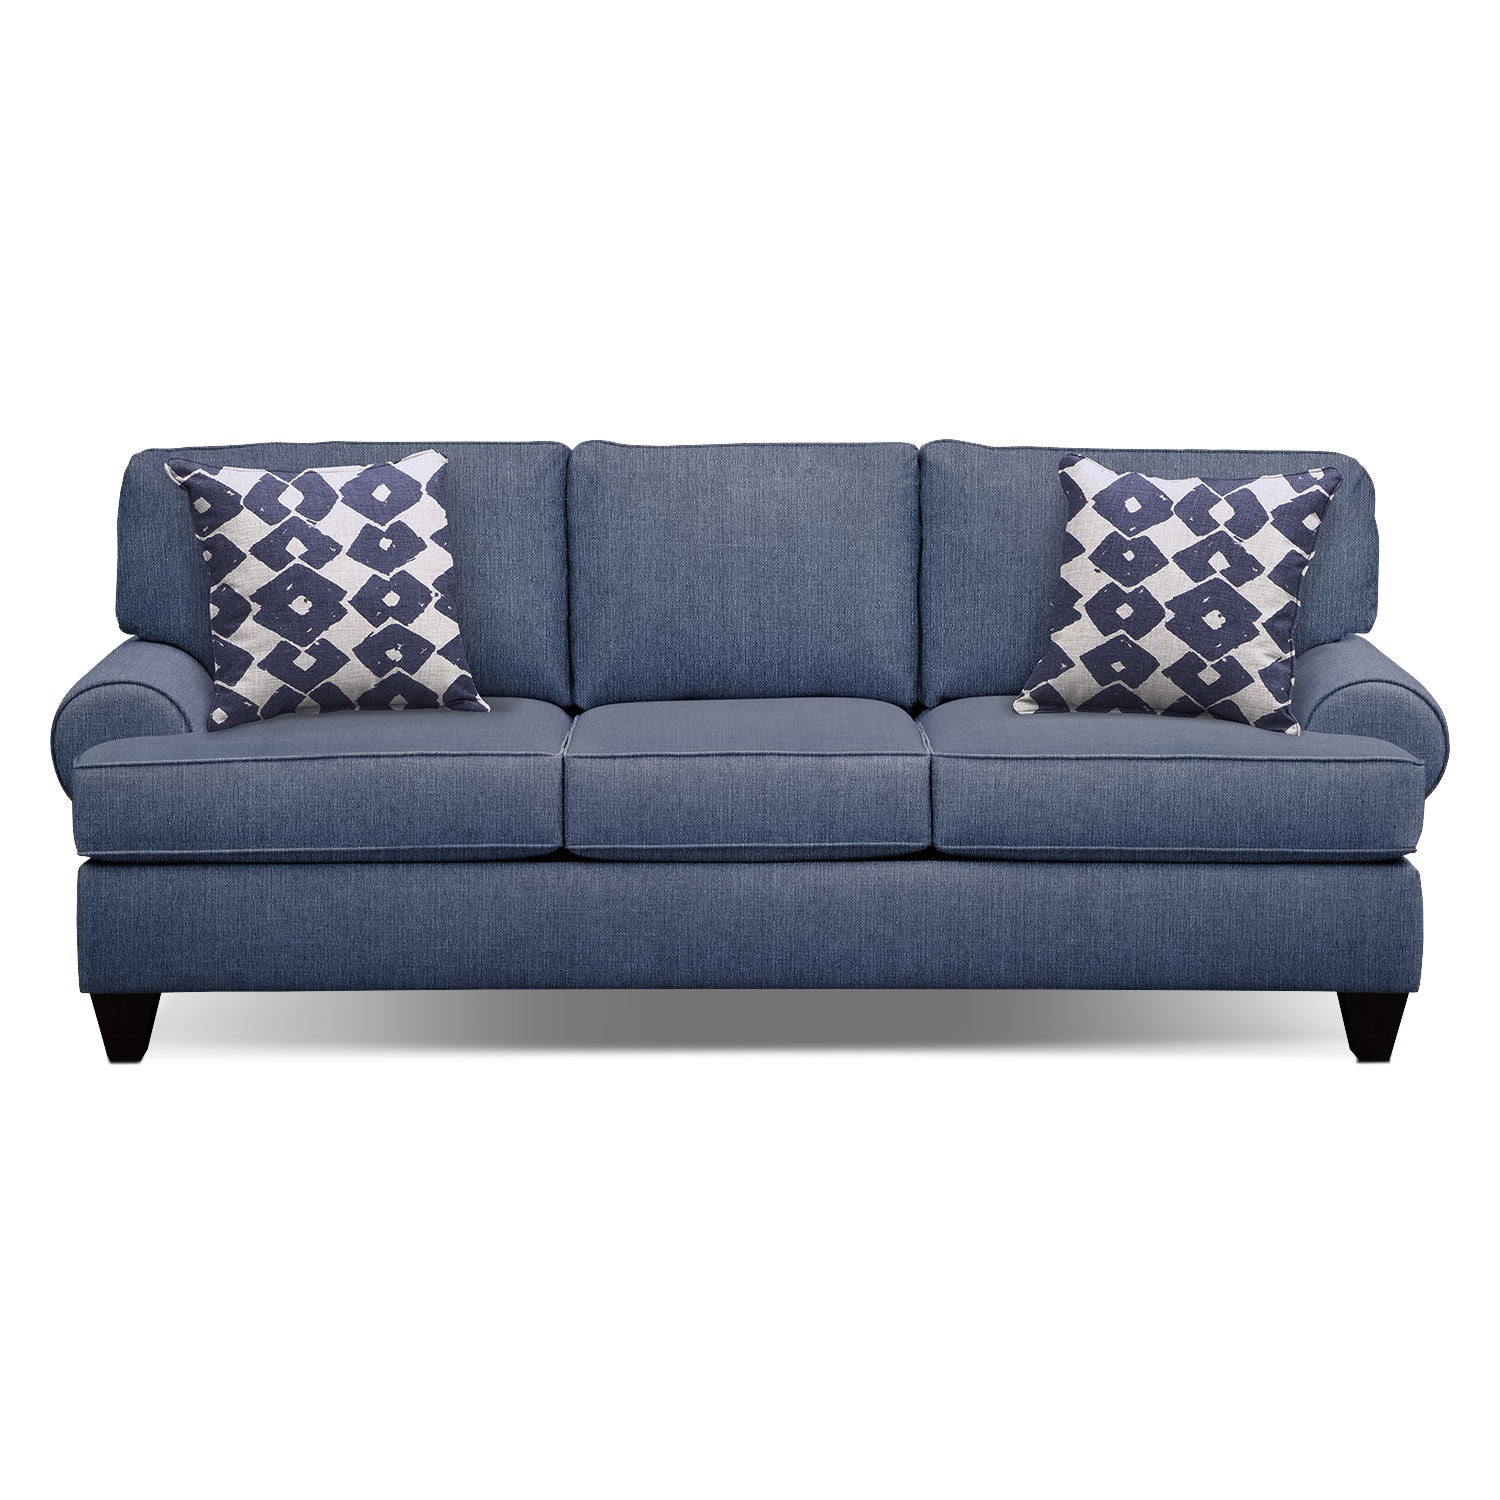 "Bailey Blue 91"" Innerspring Sleeper Sofa"